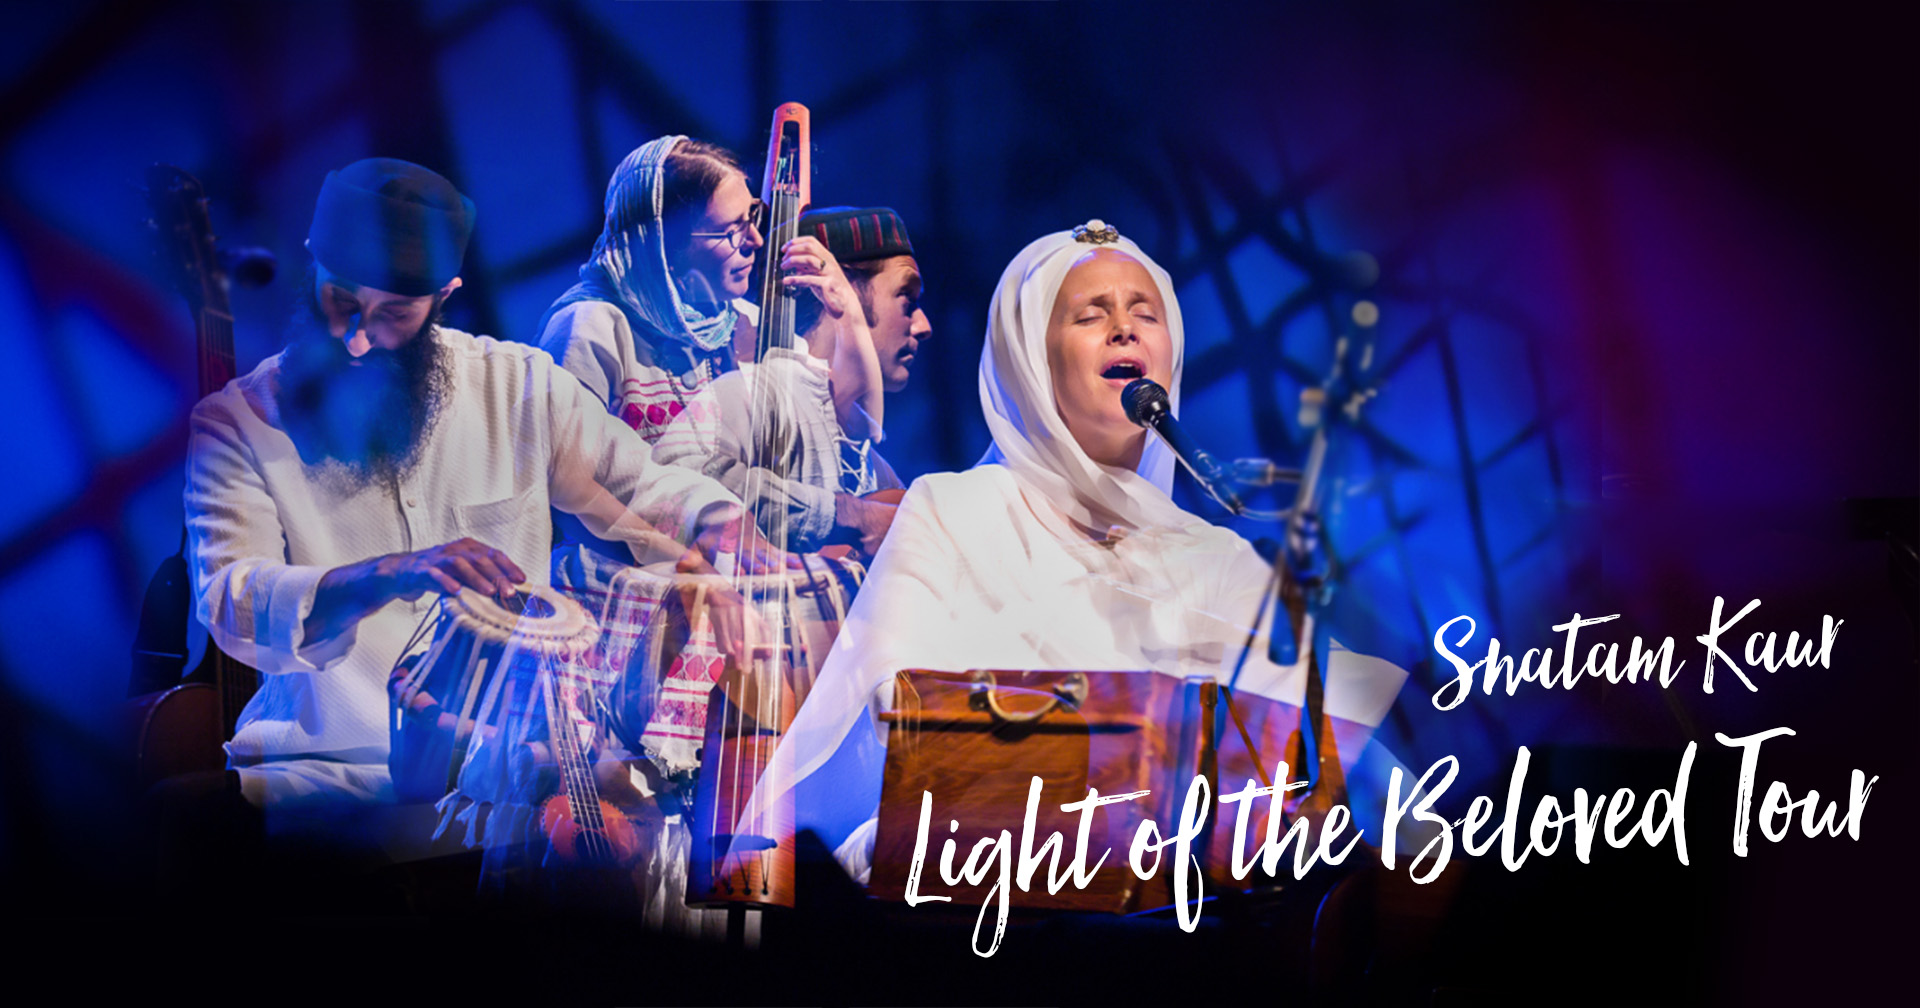 Tickets for Light of the Beloved Tour met Snatam Kaur in Amsterdam from BrightStar Live Events